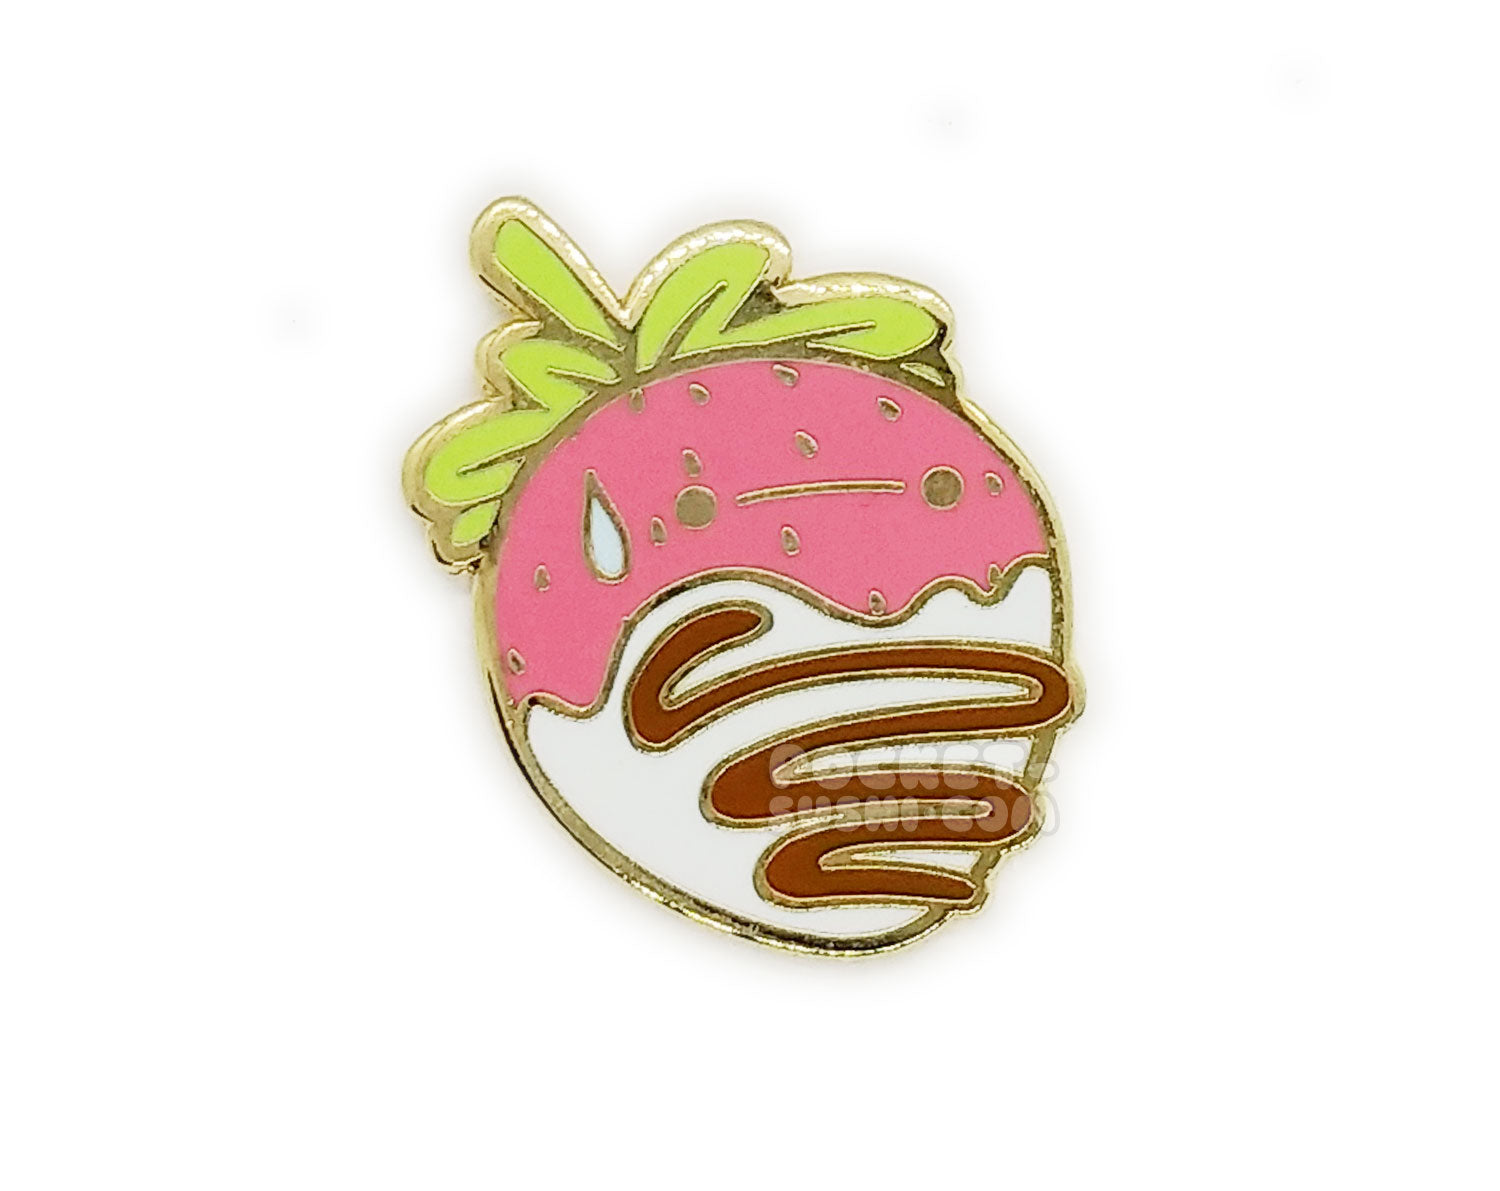 August 2019 Patreon Exclusive - White Chocolate Sweatberry Enamel Pin